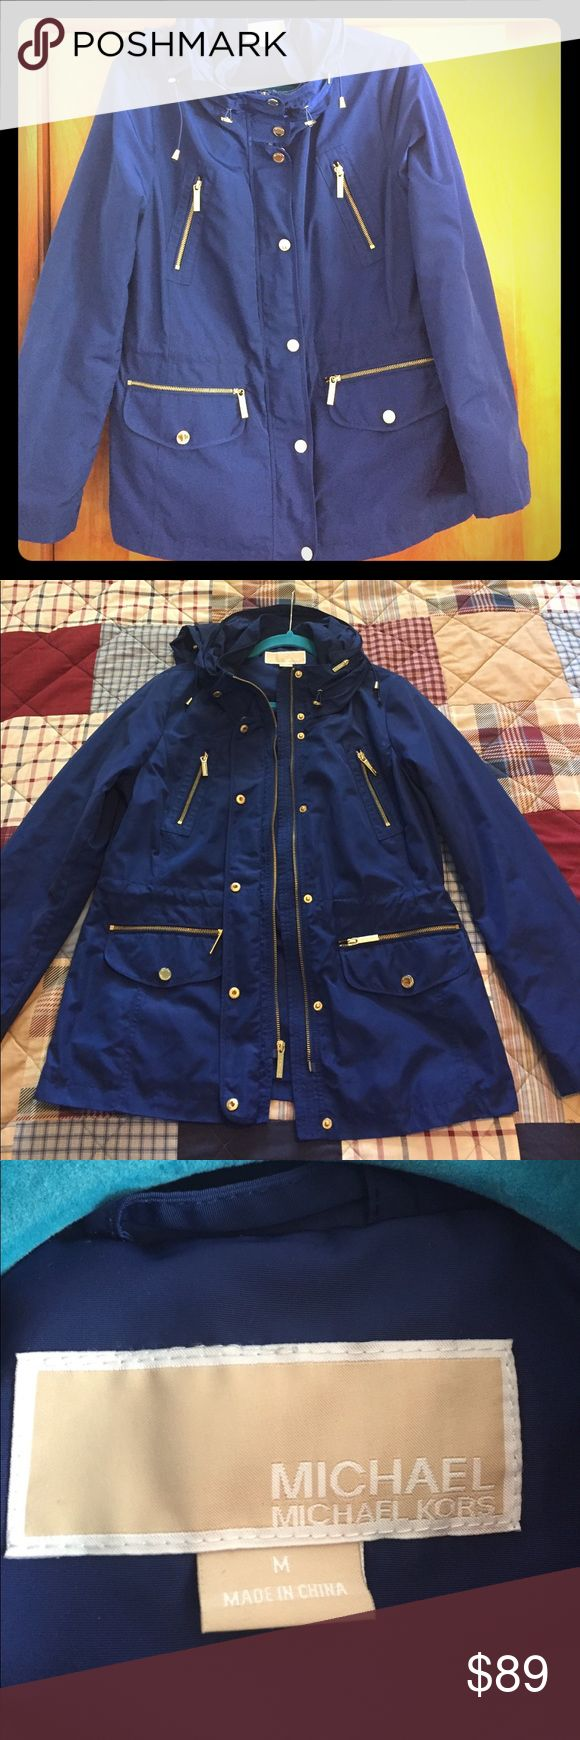 Michael Kors Navy Blue Anorak Jacket size MEDIUM Like new Michael Kors Anorak Navy Blue Jacket/Raincoat with gold buttons. Size Medium. MICHAEL Michael Kors Jackets & Coats Utility Jackets